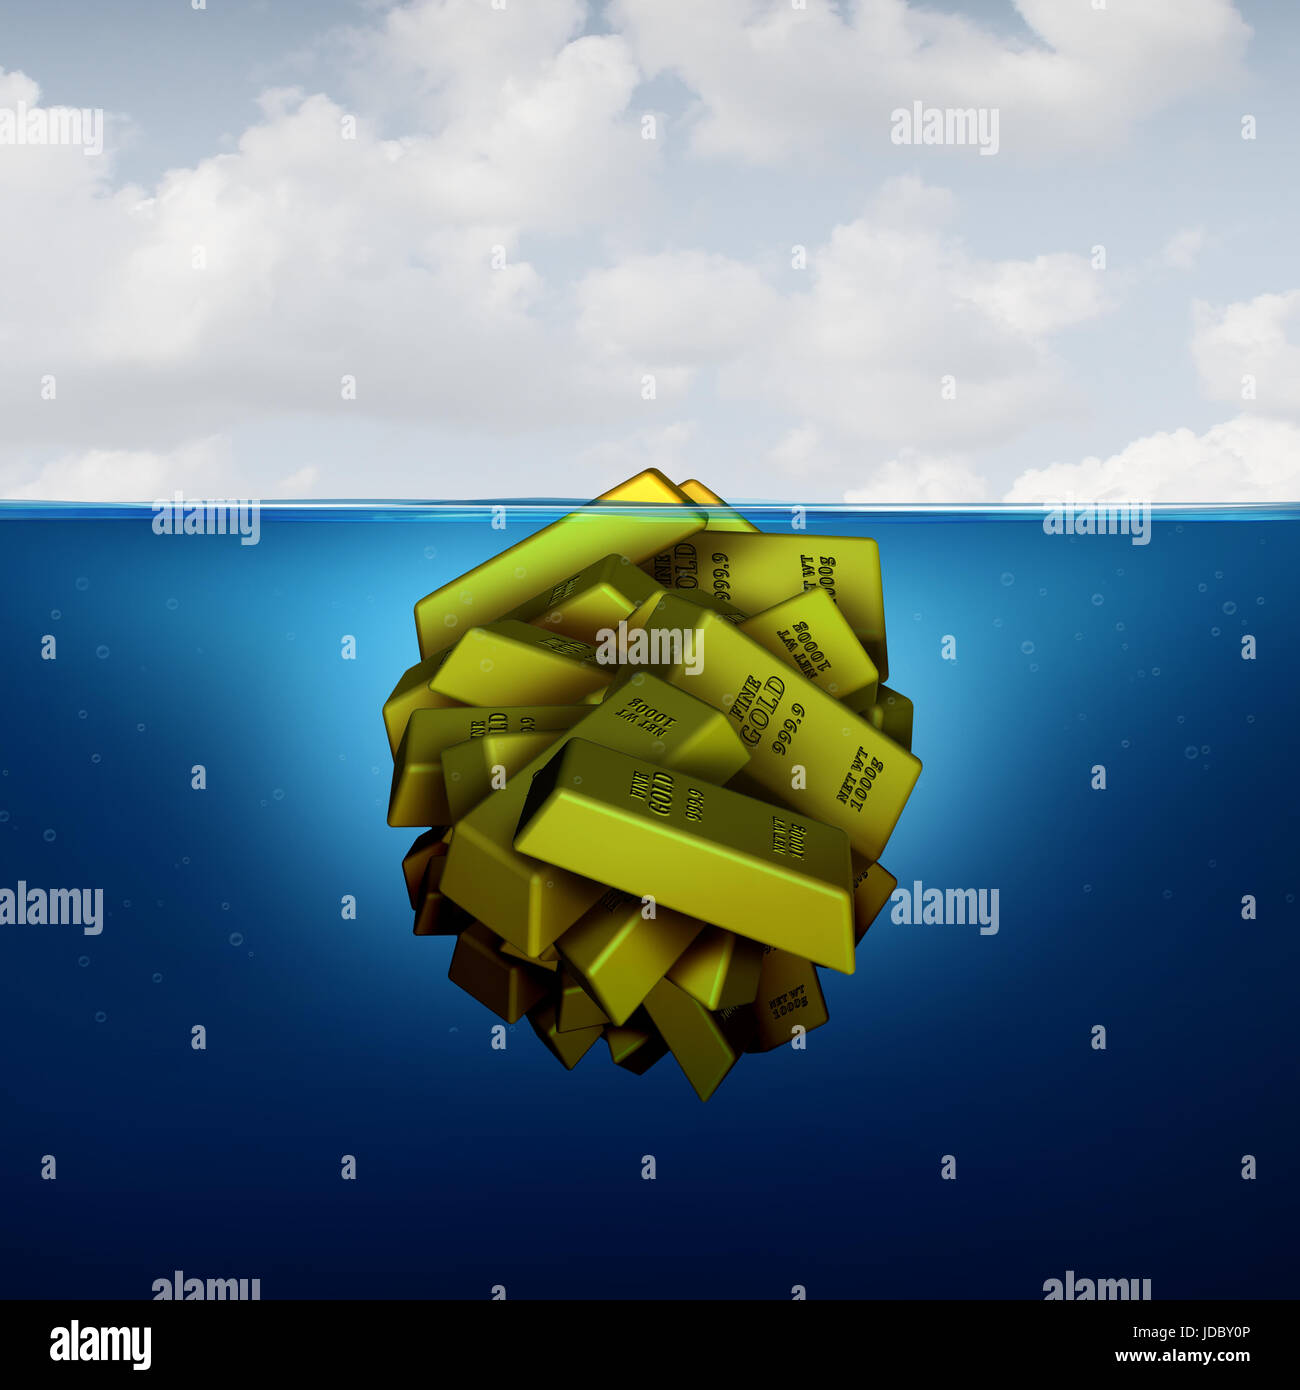 Iceberg business concept as a hidden fortune opportunity economic vision concept as an investing metaphor as a group - Stock Image